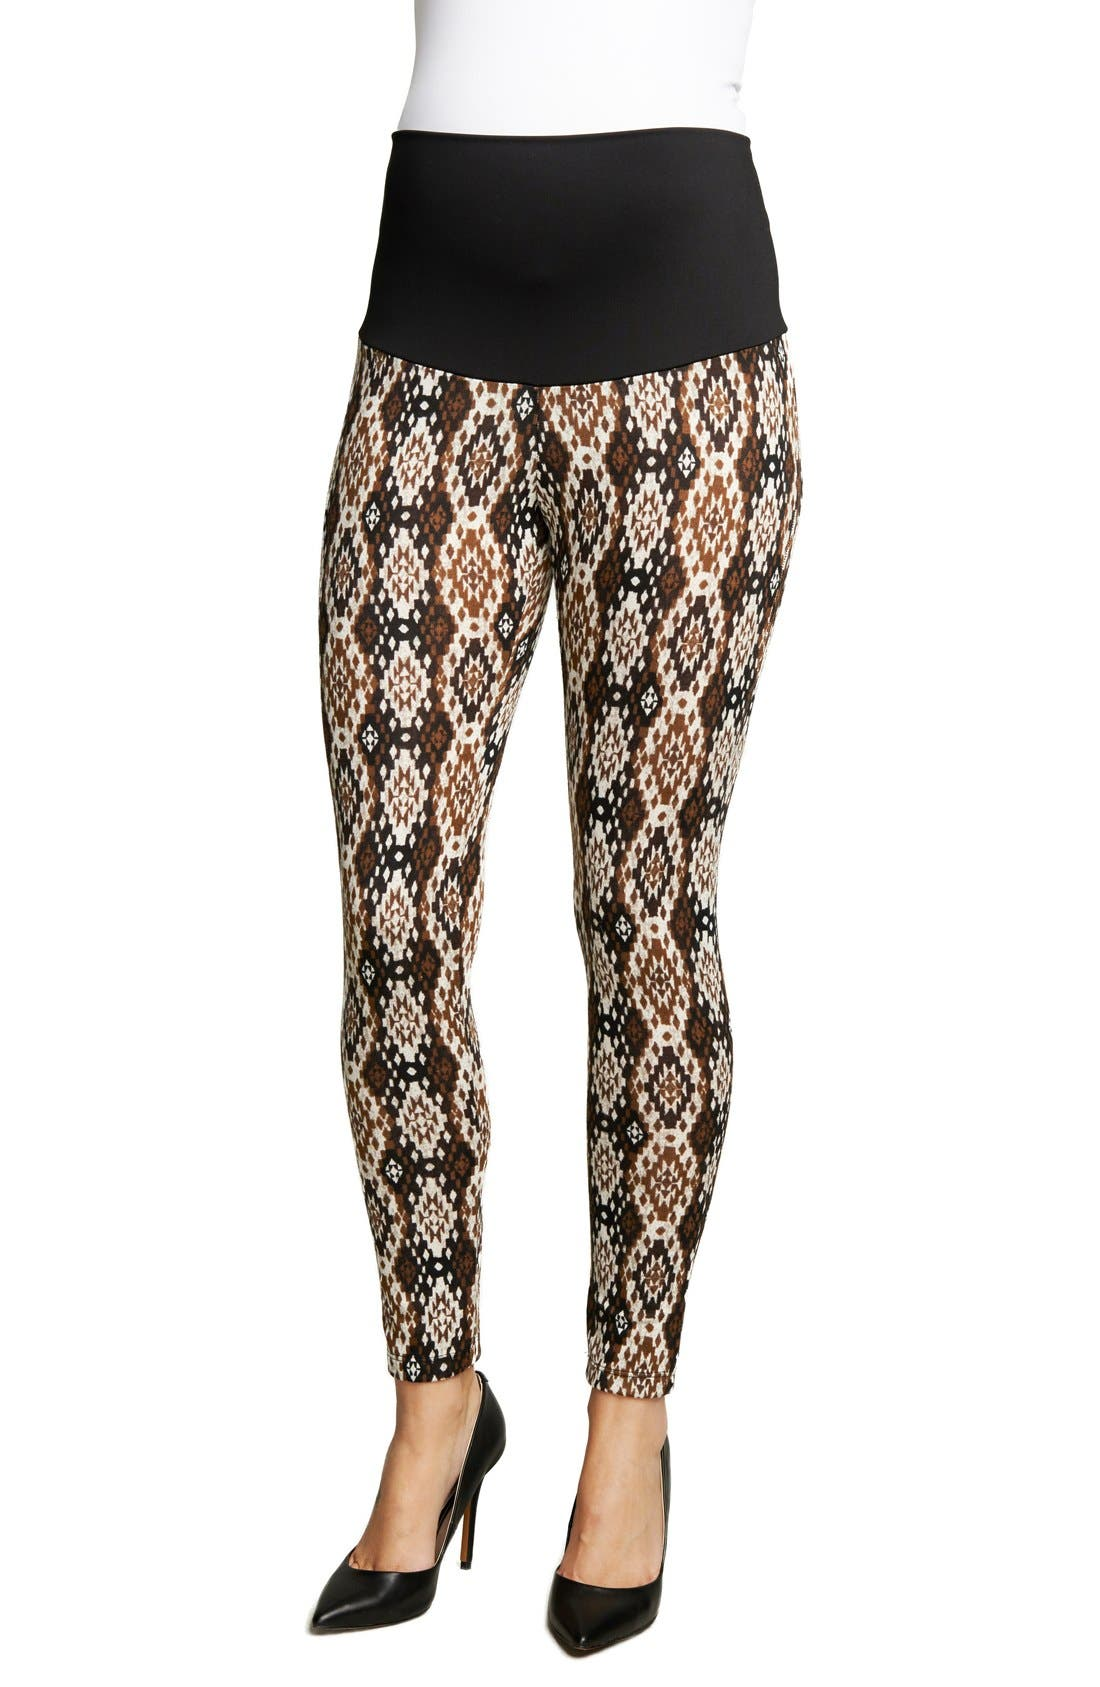 MATERNAL AMERICA 'Belly Support' Ikat Print Maternity Leggings